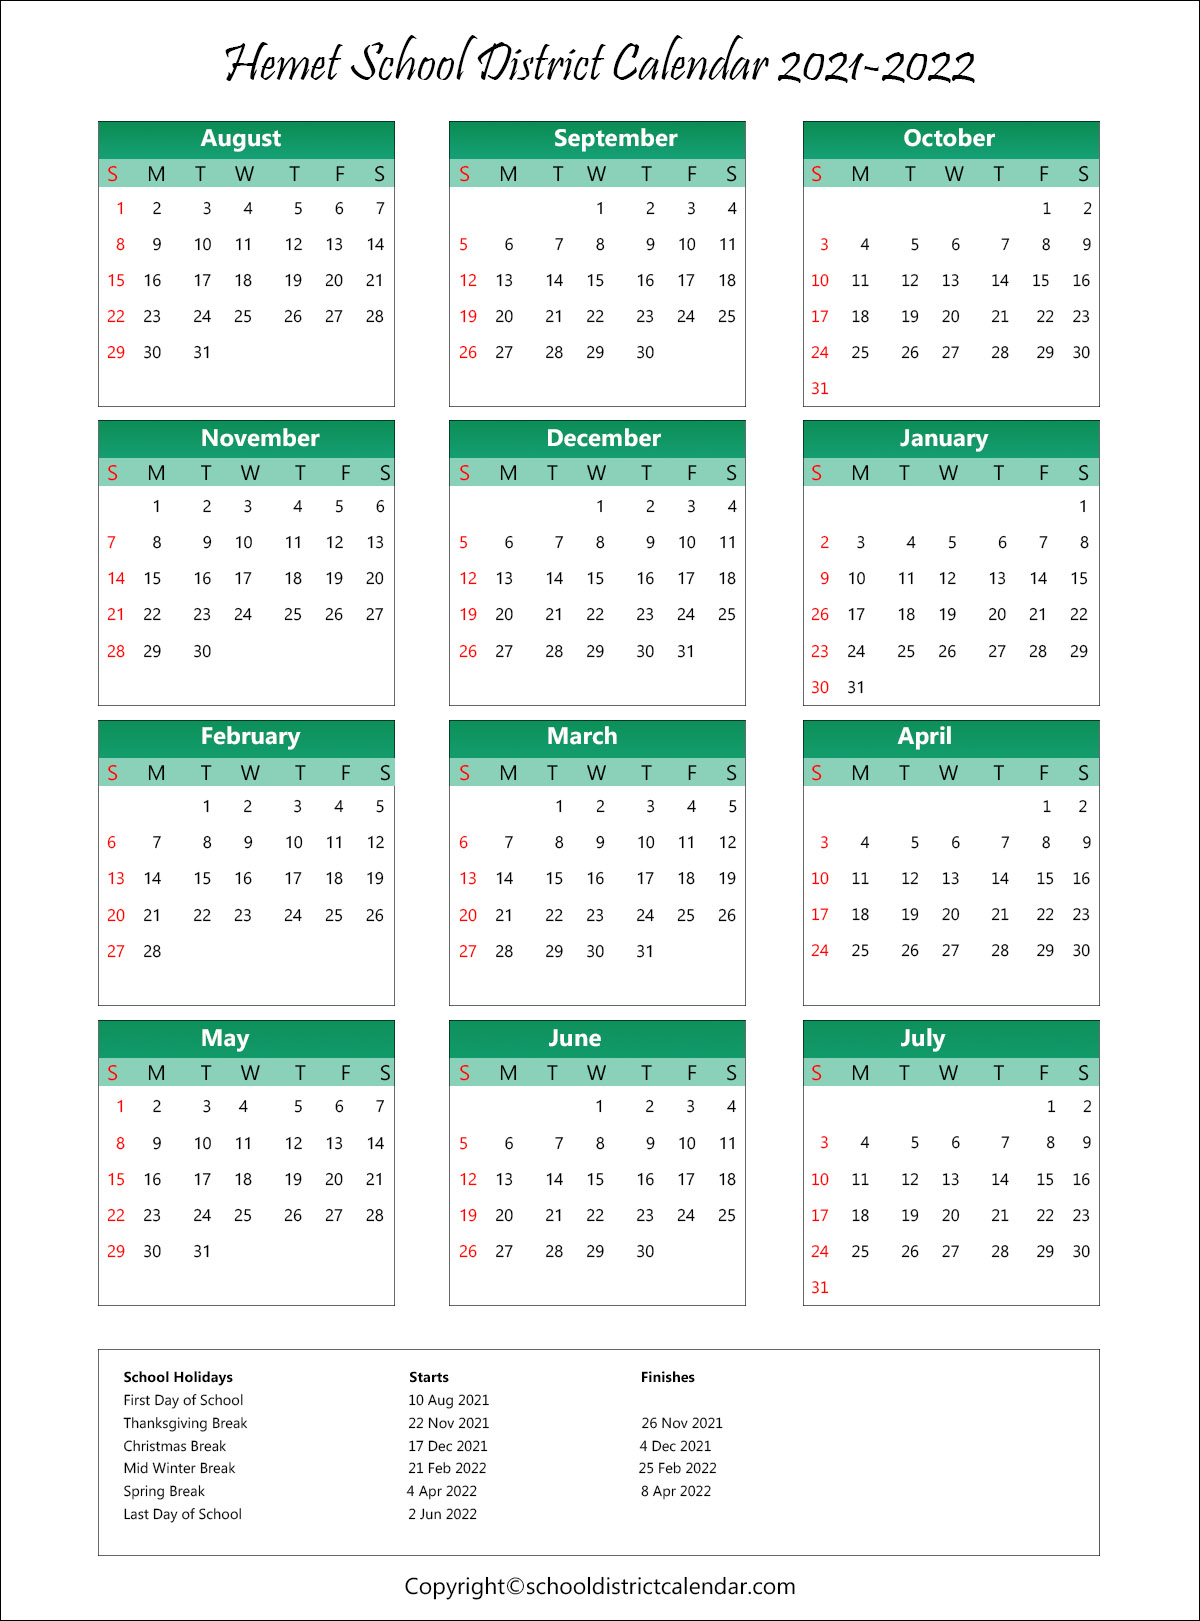 Hemet Unified School District, Hemet Calendar Holidays 2021